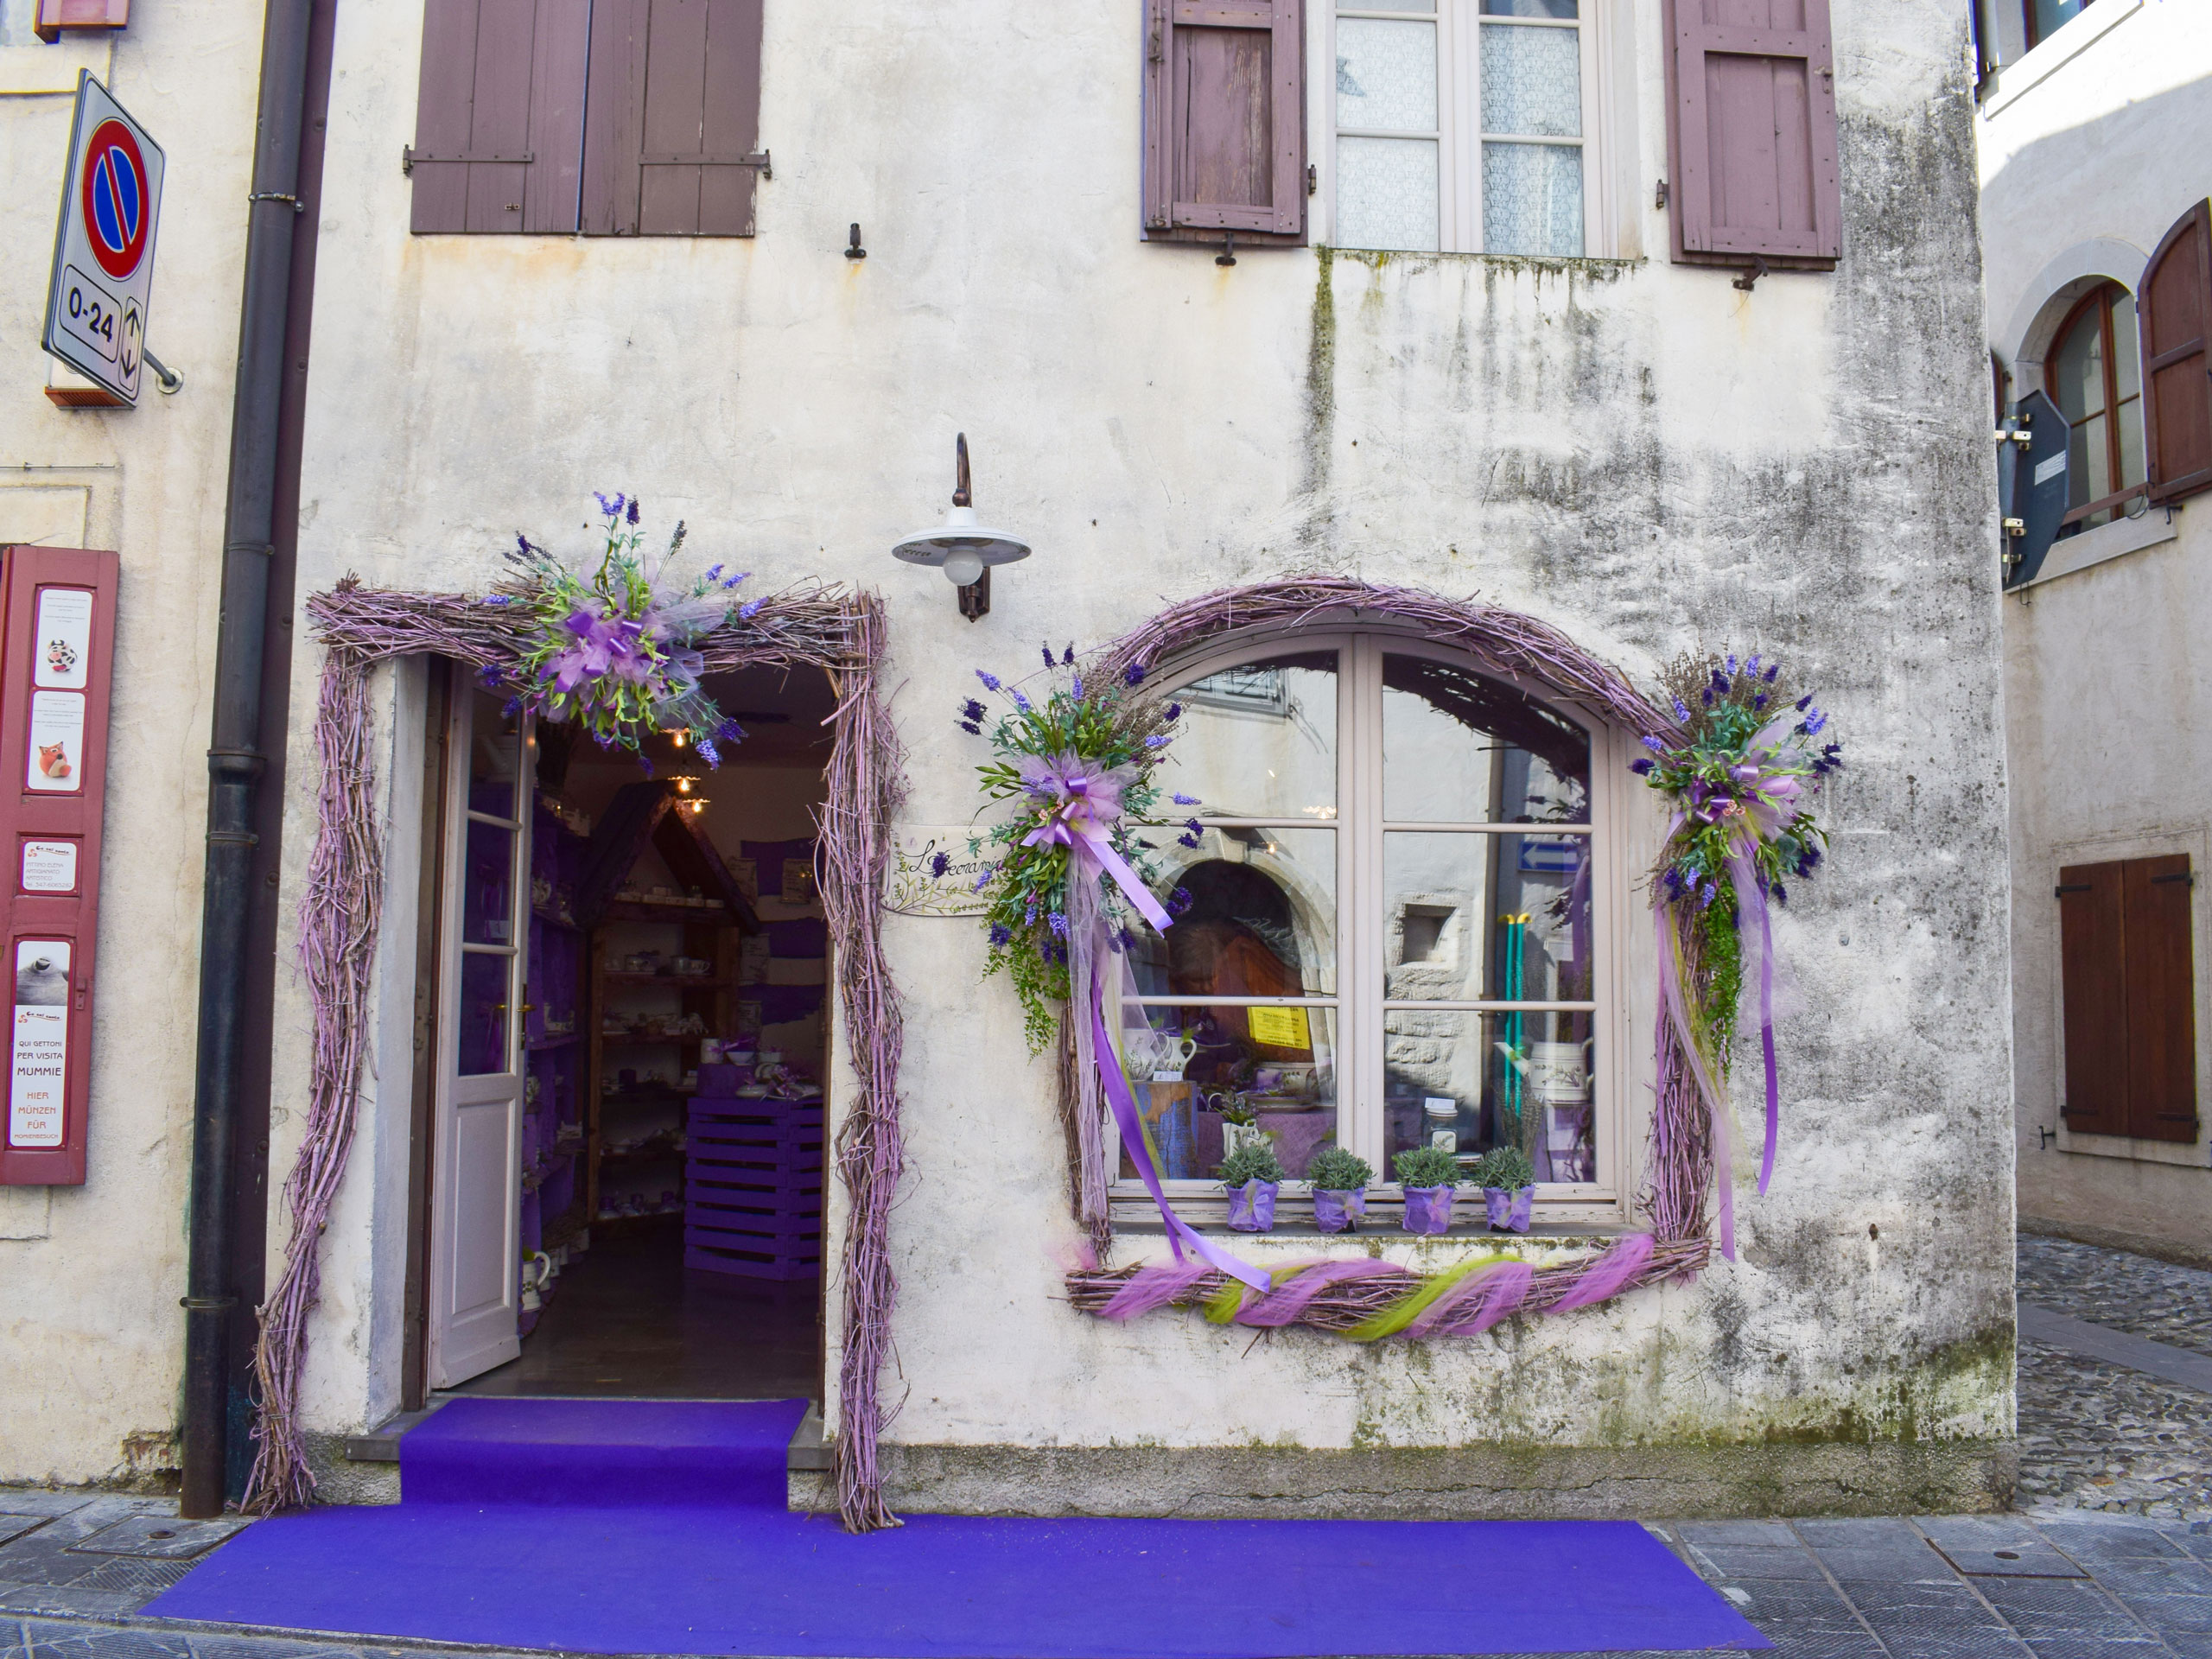 Purple decoration shop in the old architectural house in Italy